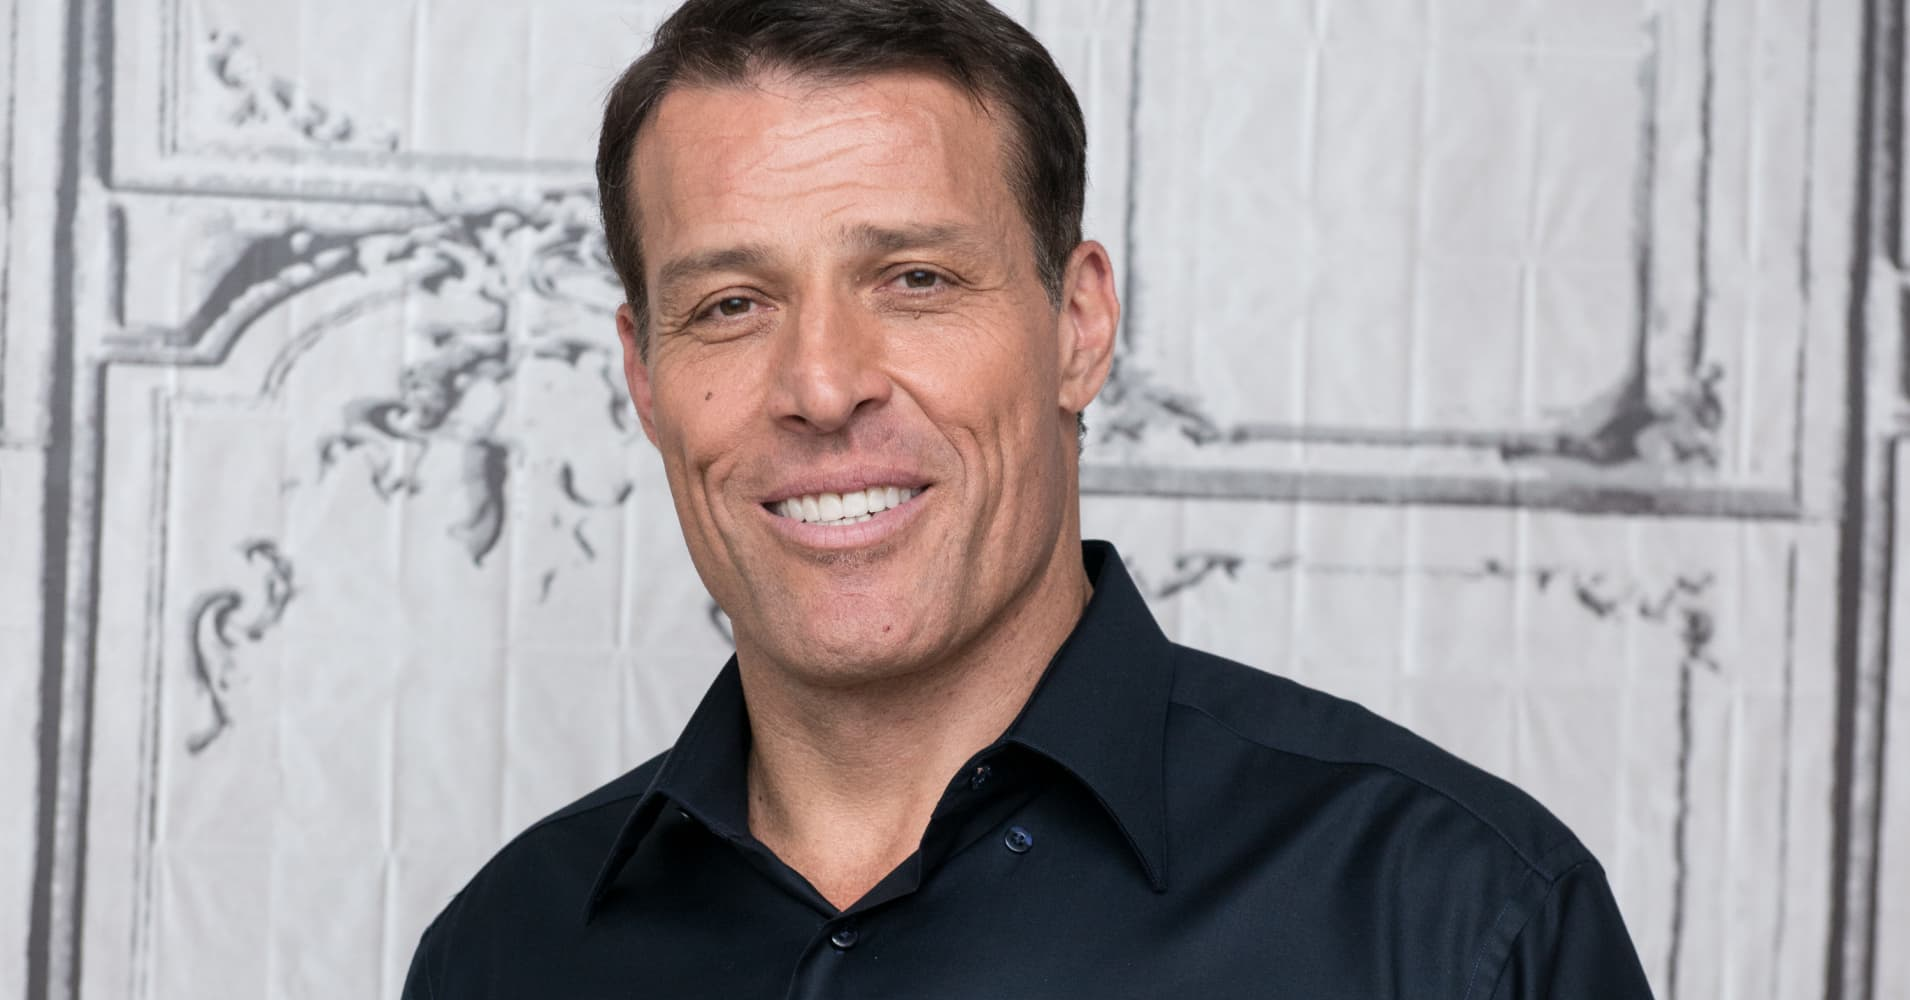 Tony Robbins: For a better quality of life, answer these 3 questions